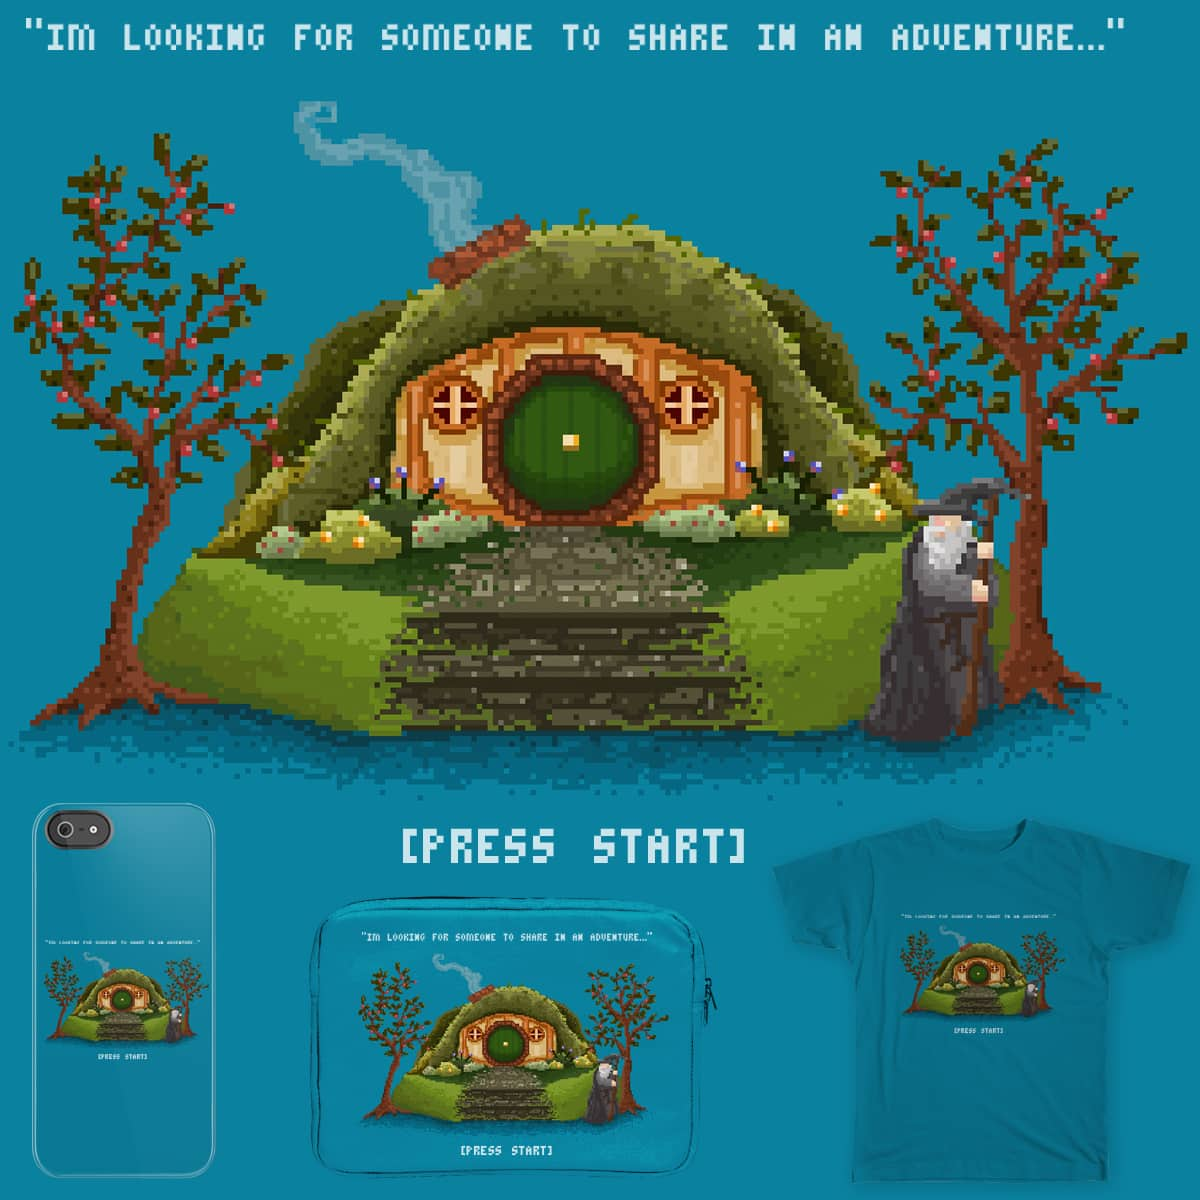 Share in an Adventure by RoseMakesArt on Threadless